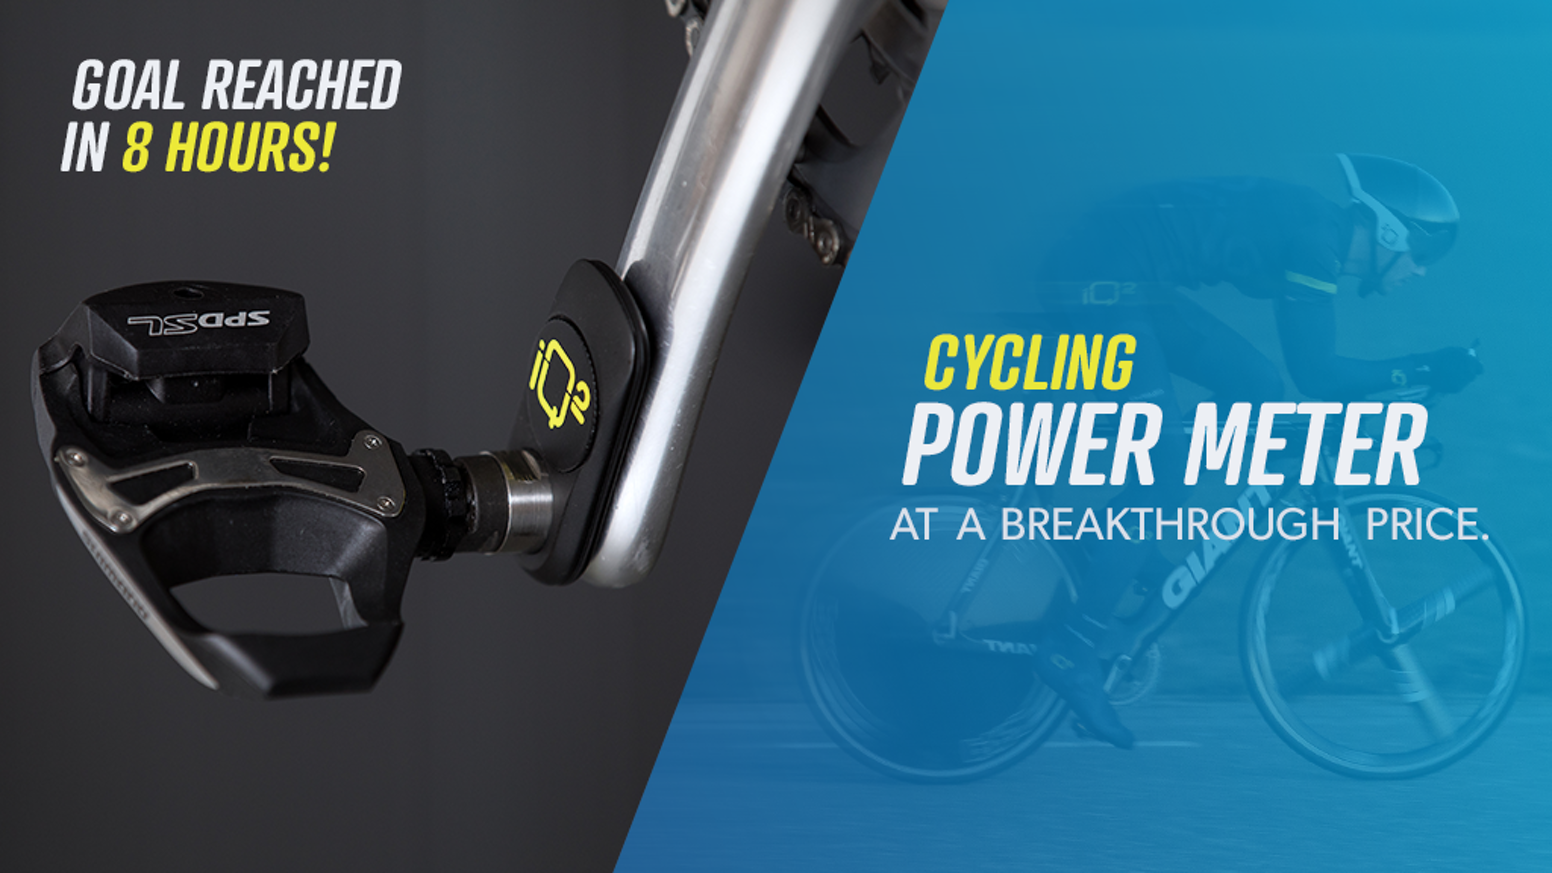 Reach your optimal performance with the power meter by iQ², the most advantageous cycling tool at a price we can all afford.